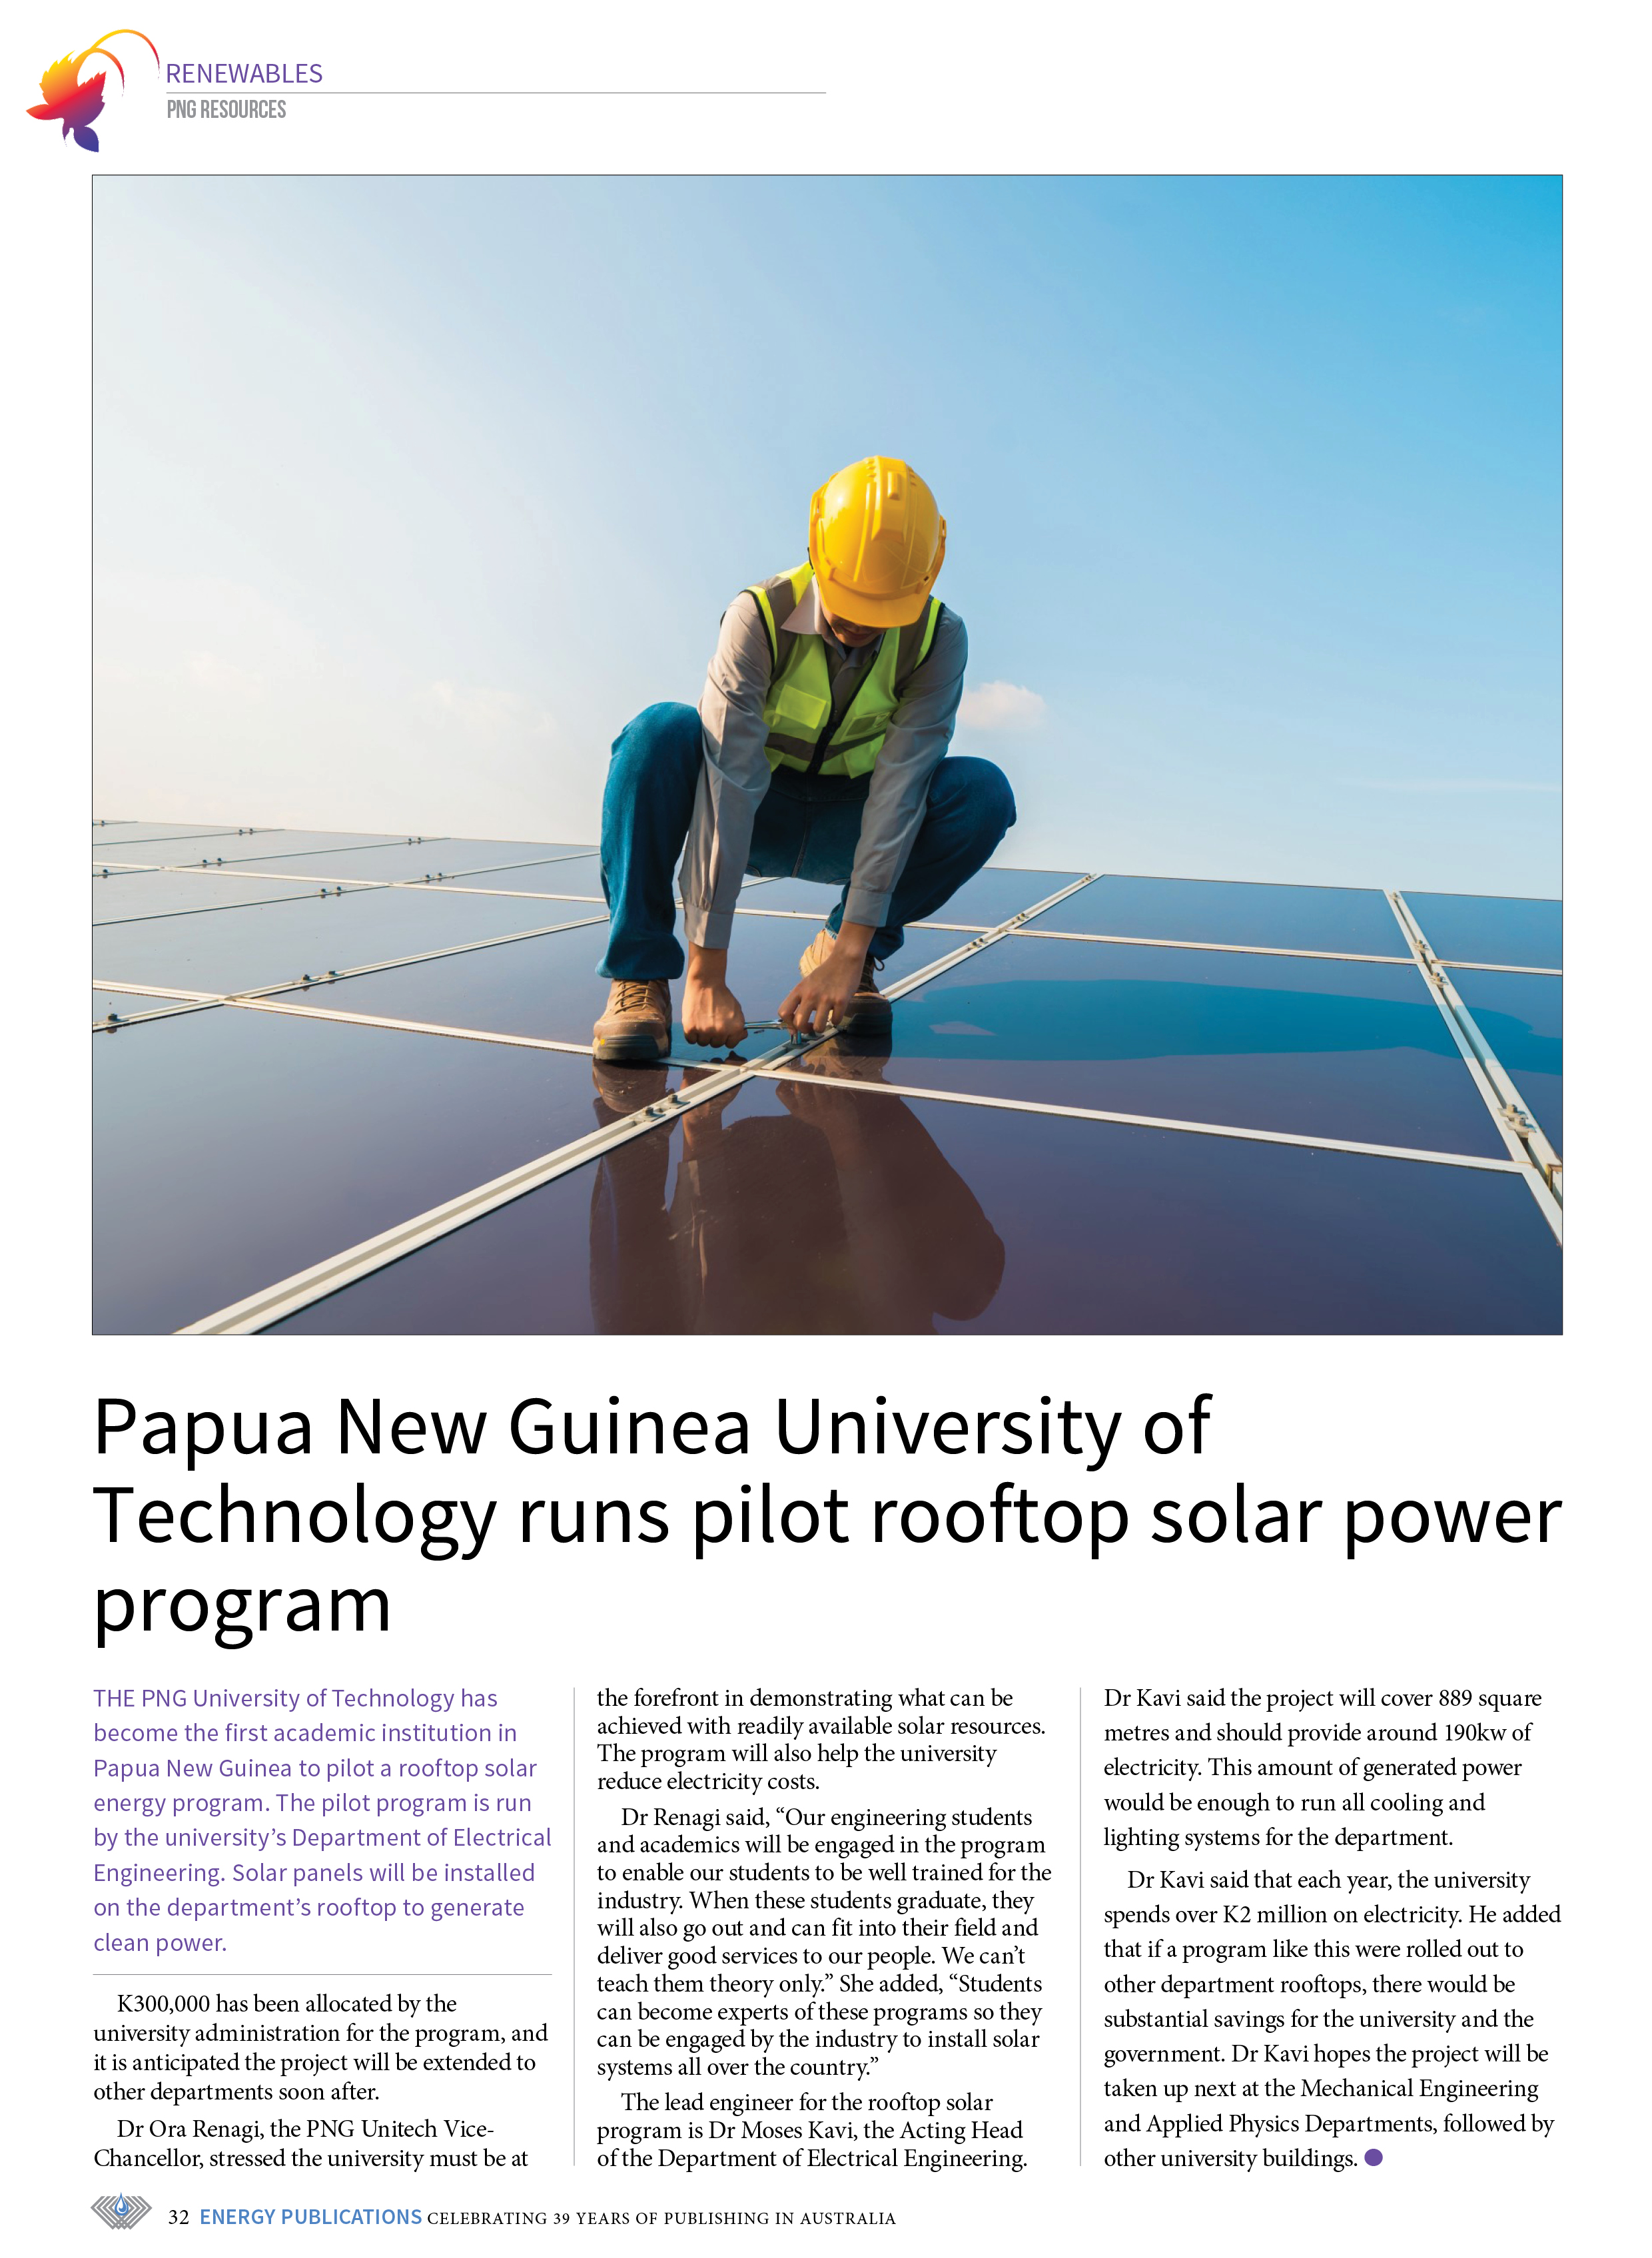 PNG Resources Q1 2021 – Page 34